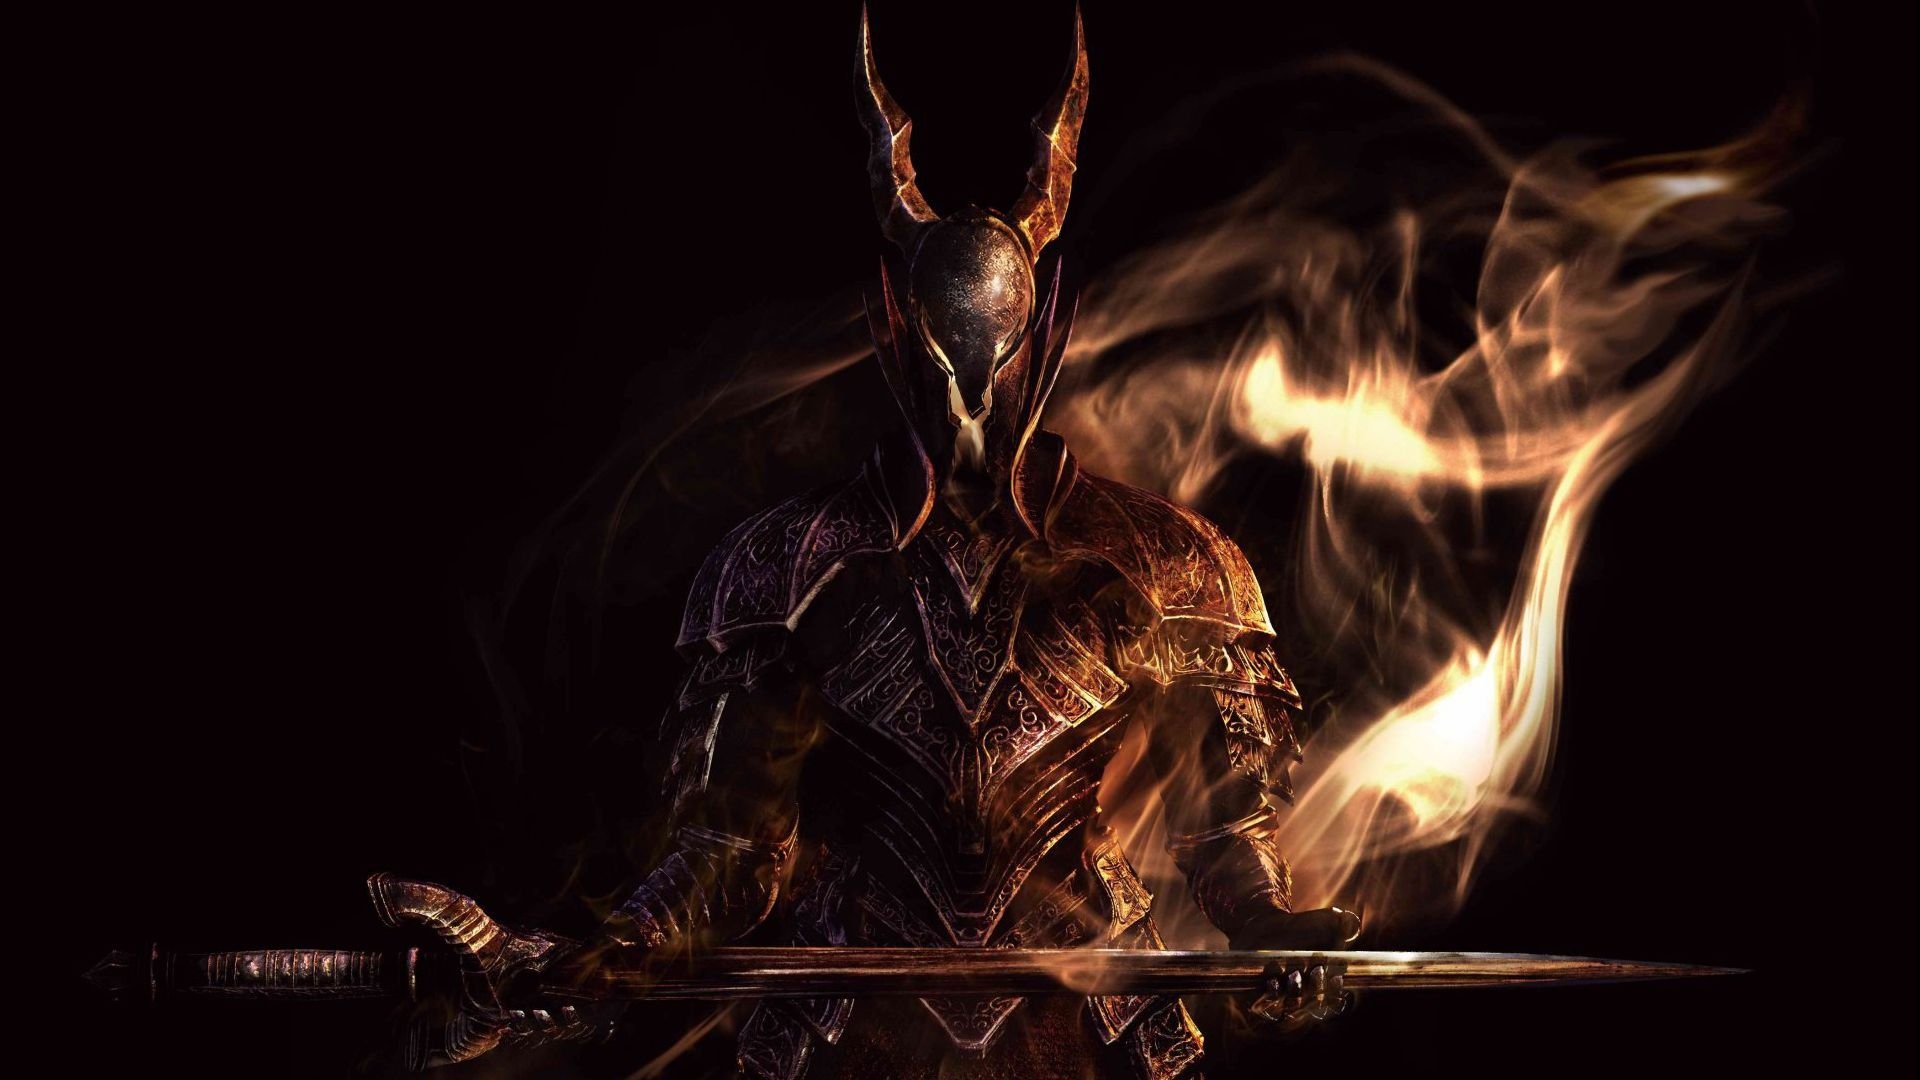 dark souls lodran wallpaper - photo #34